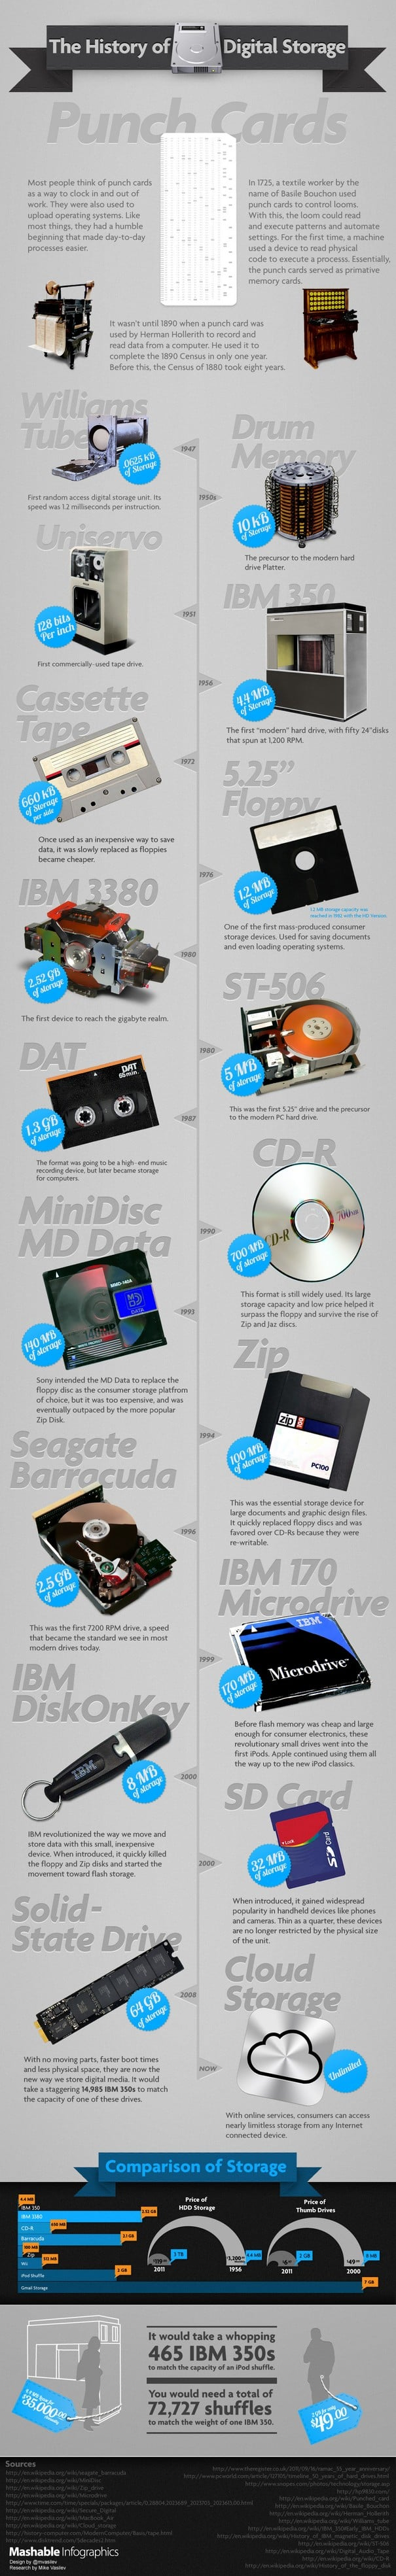 The History of Digital Storage INFOGRAPHIC